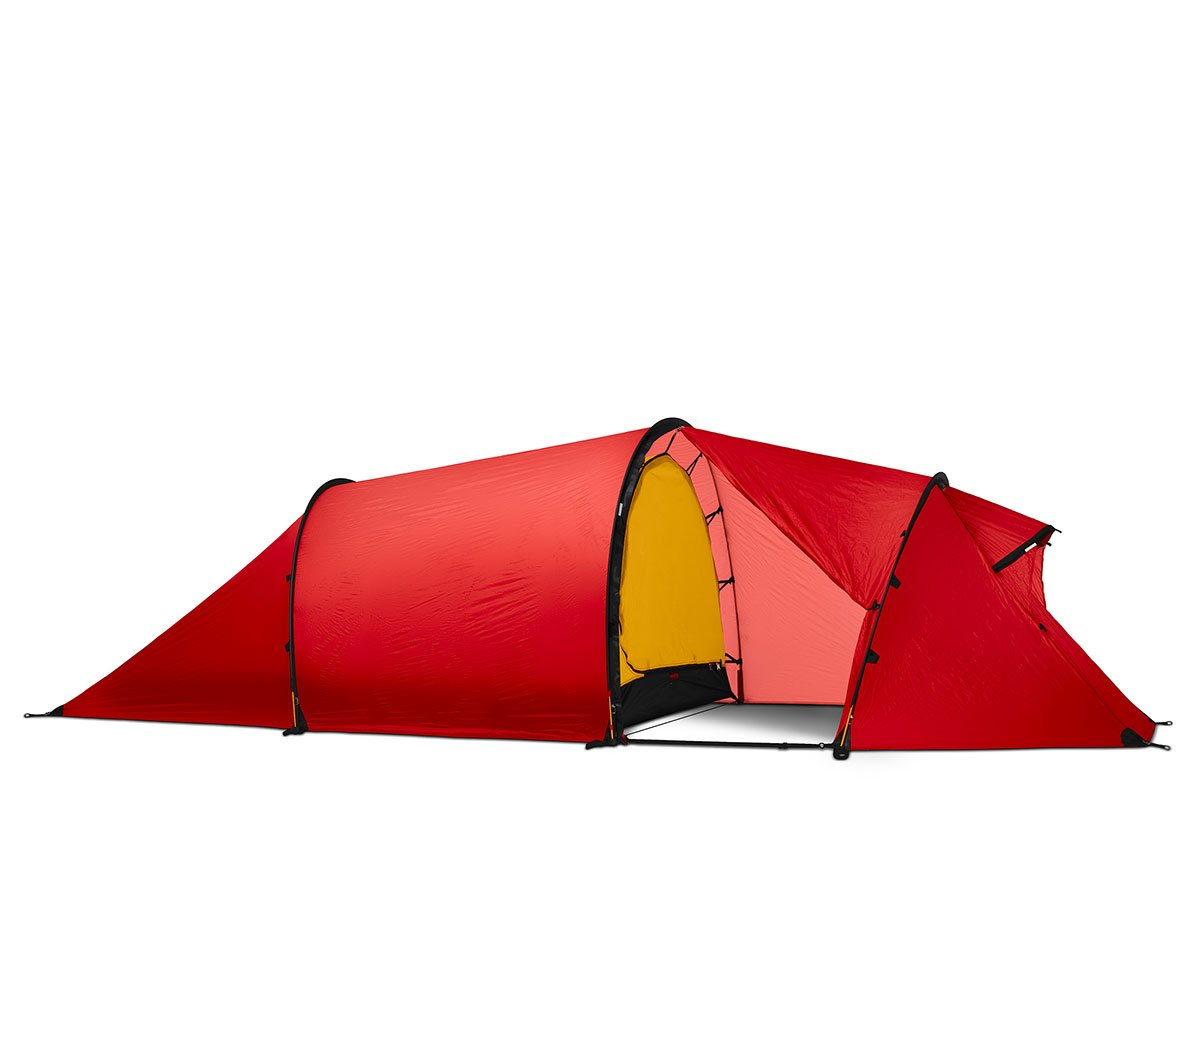 Hilleberg Nallo 2 GT Mountaineering Tent, Red Fly